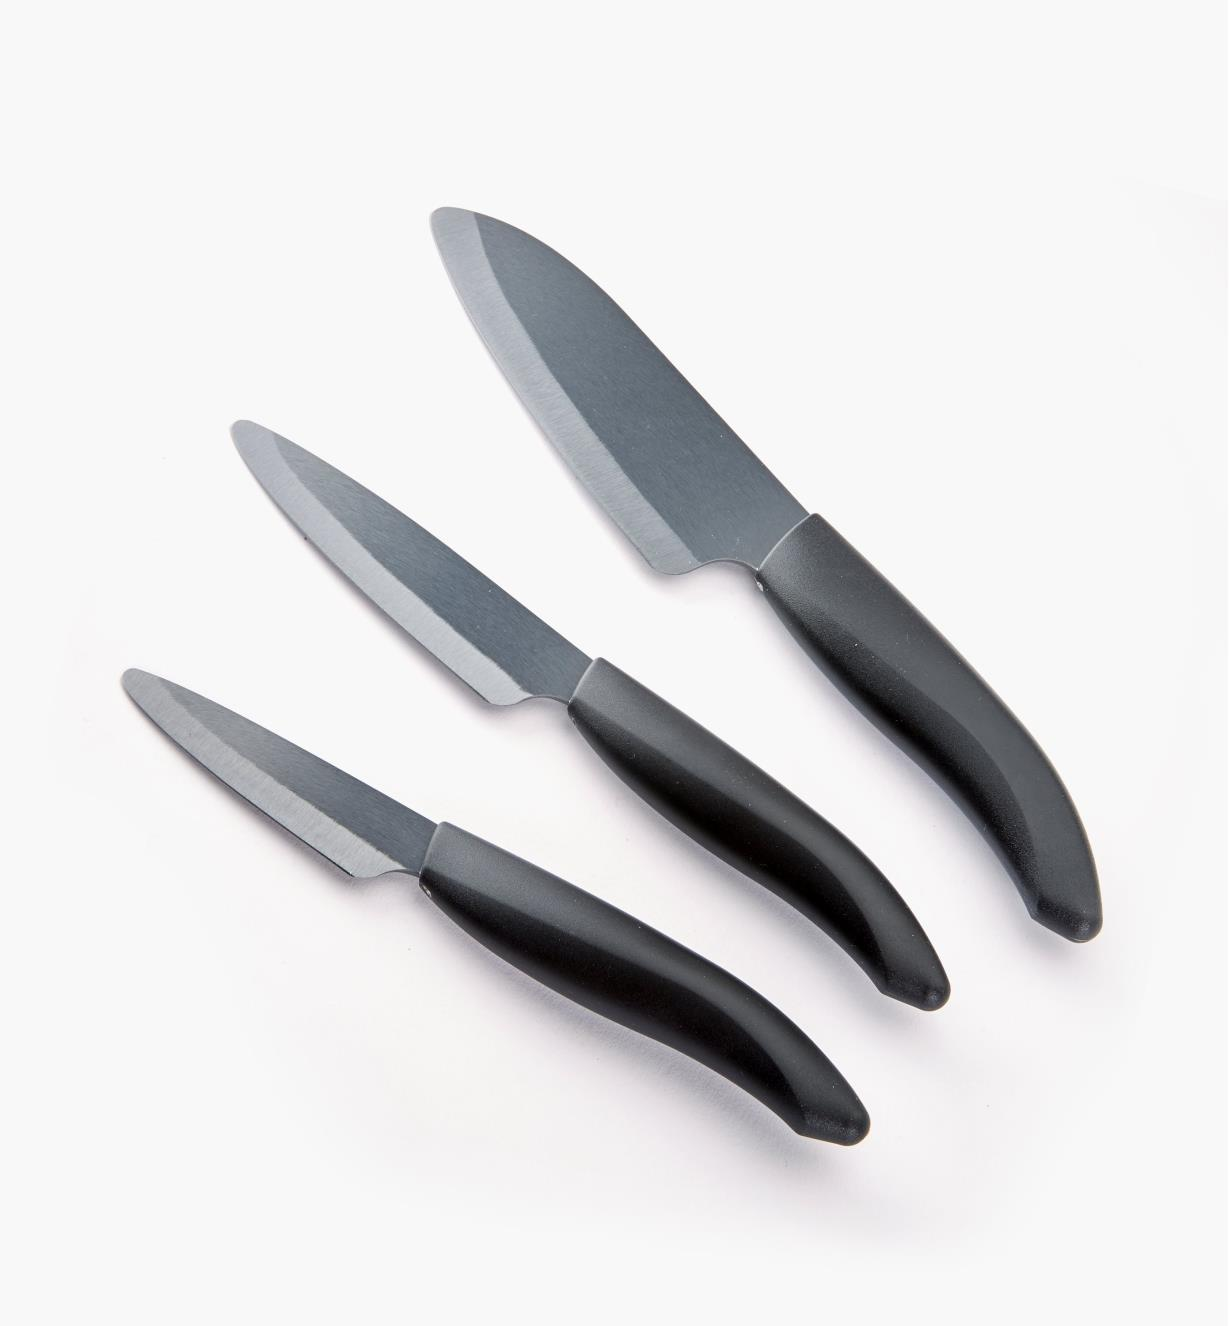 99W5940 - Set of 3 Kyocera Ceramic Knives